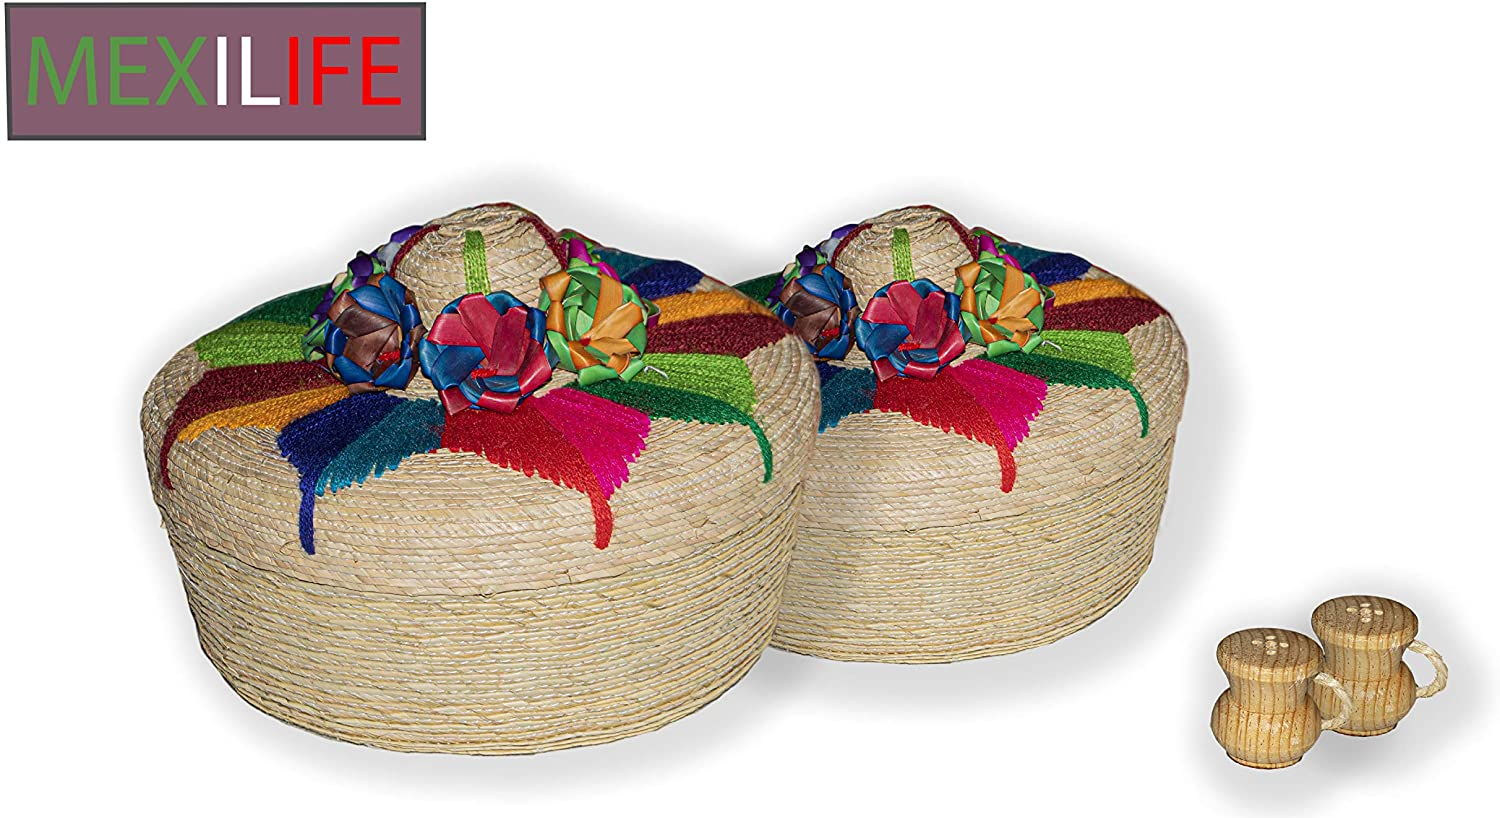 Mexican Palm Tortilleros. Handmade by The Indigenous People OF Mexico. Mexican Tortilla and Pancake Warmer. Great candy, and Chips Holder. With Shakers (Tradicional, 2 Pack)